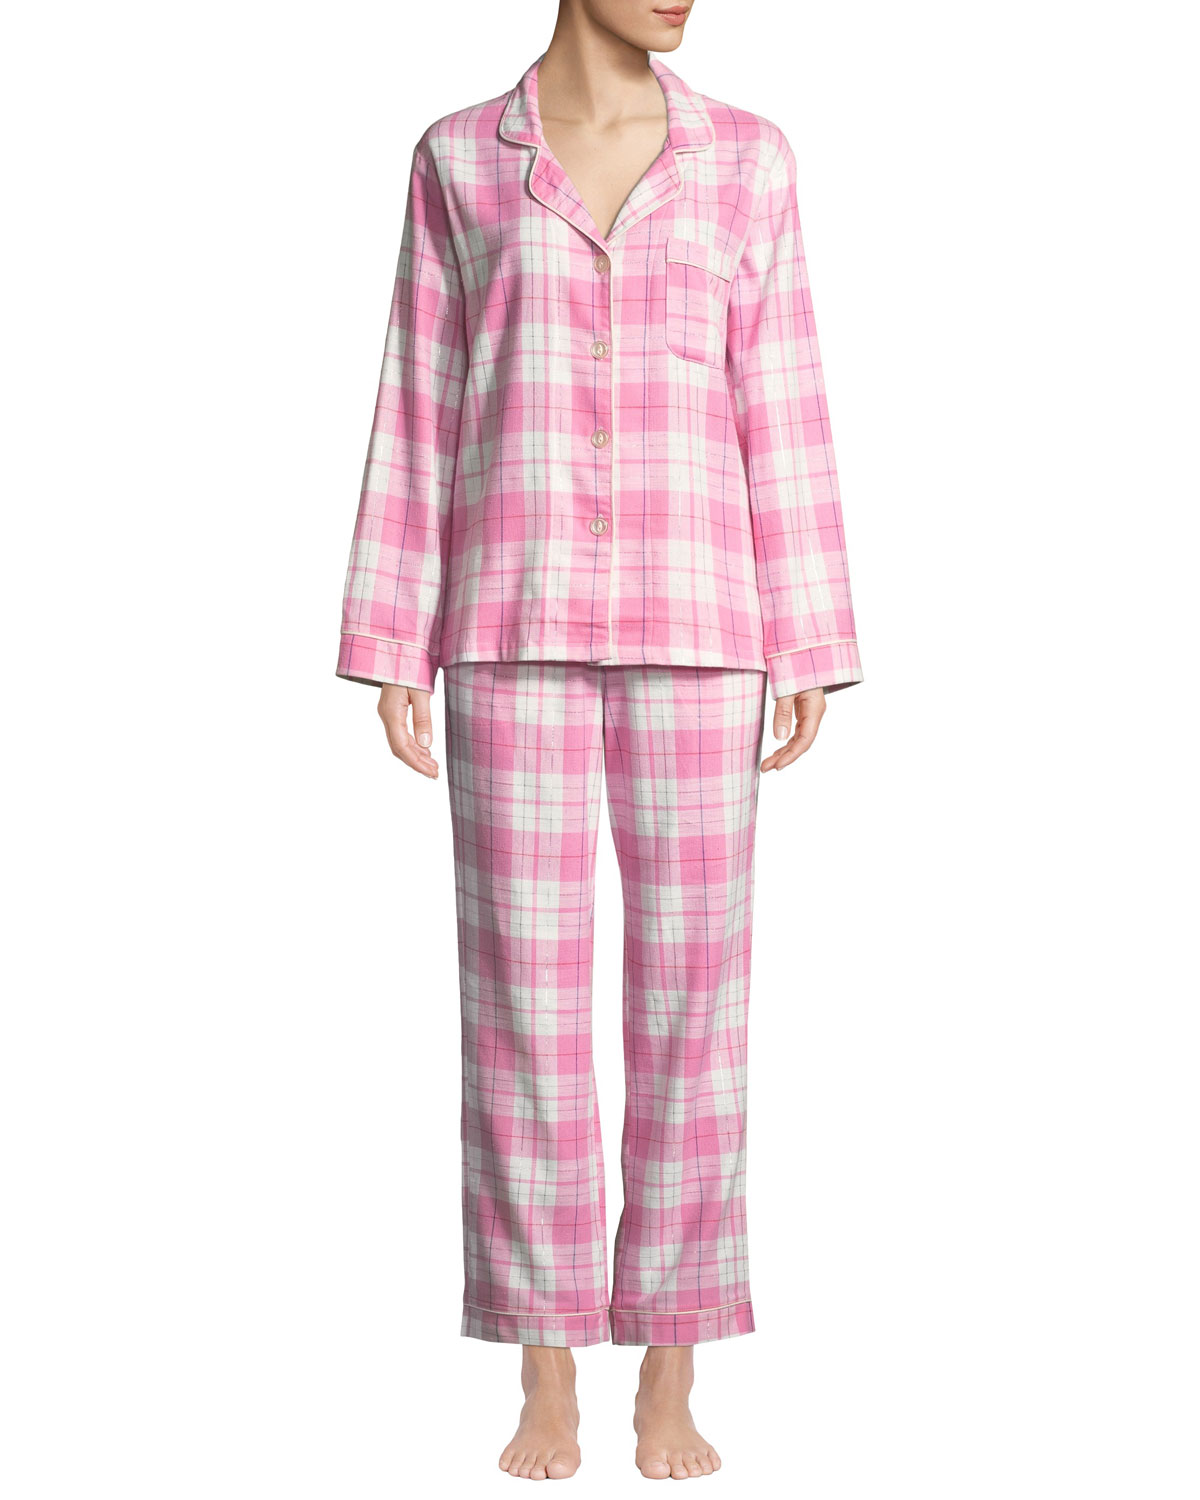 BEDHEAD Plaid Flannel Classic Pajama Set With Metallic Detail in Pink/White